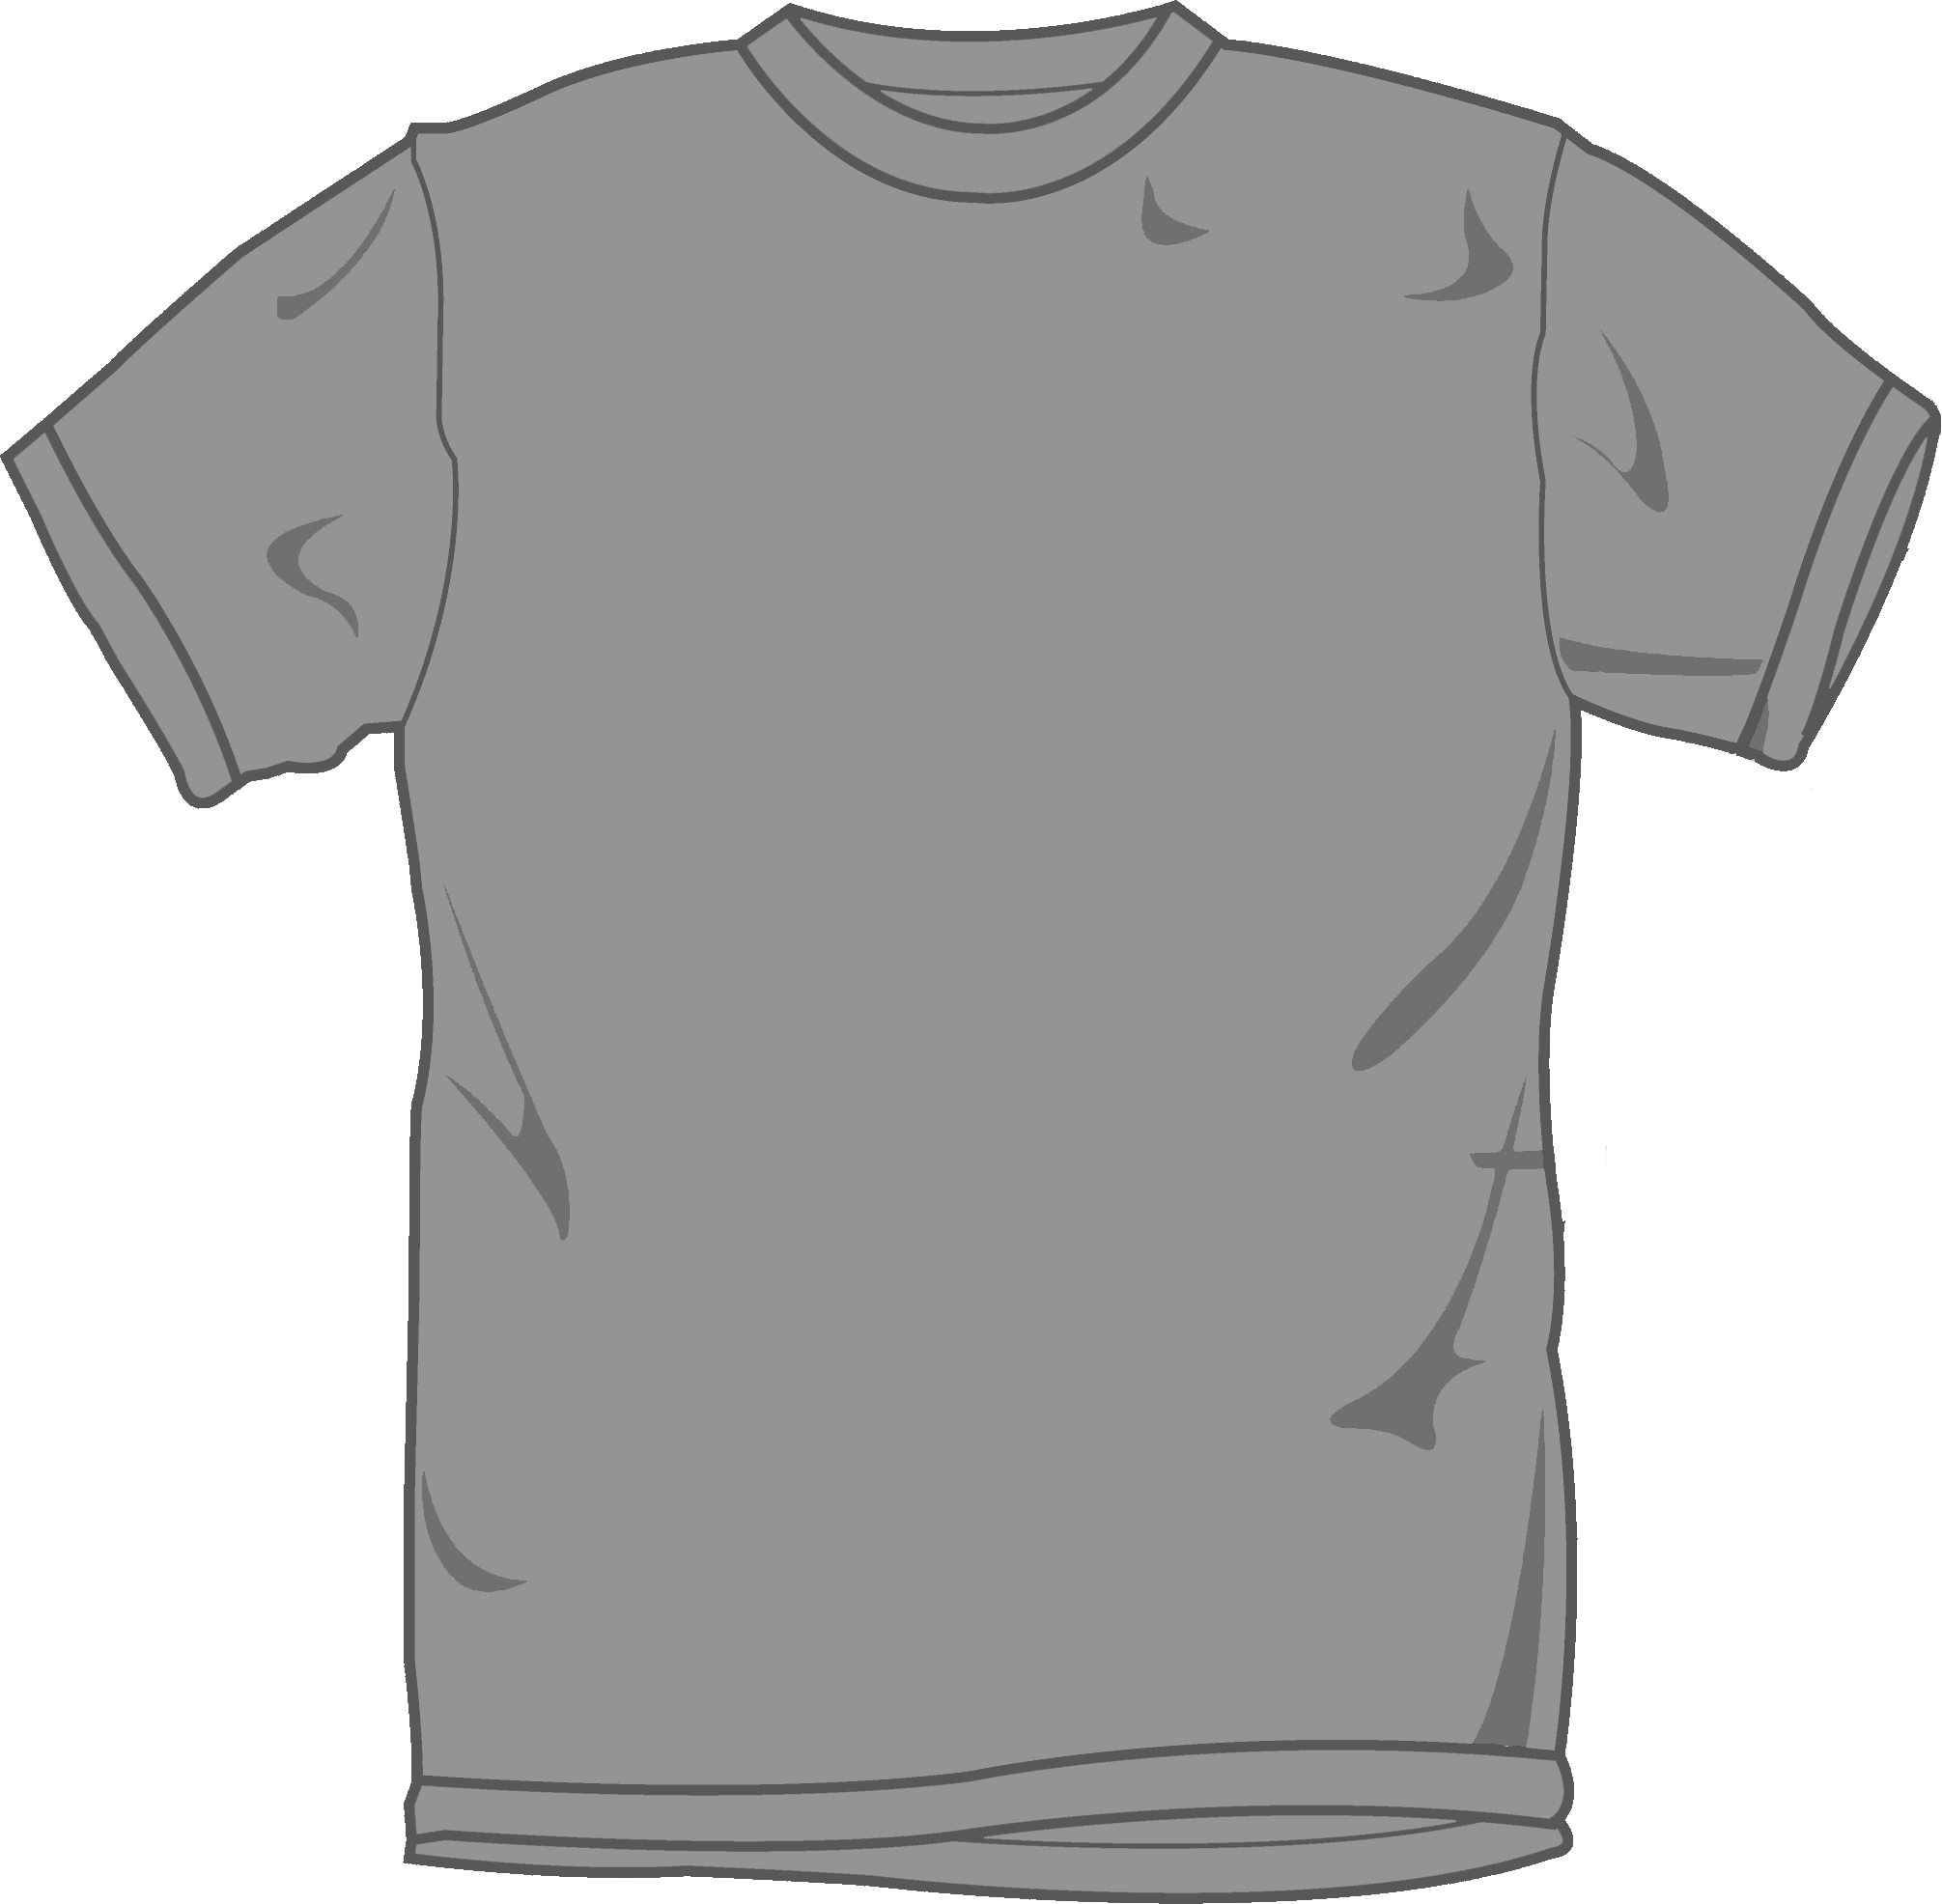 Gray t shirt template clipart images gallery for free download.